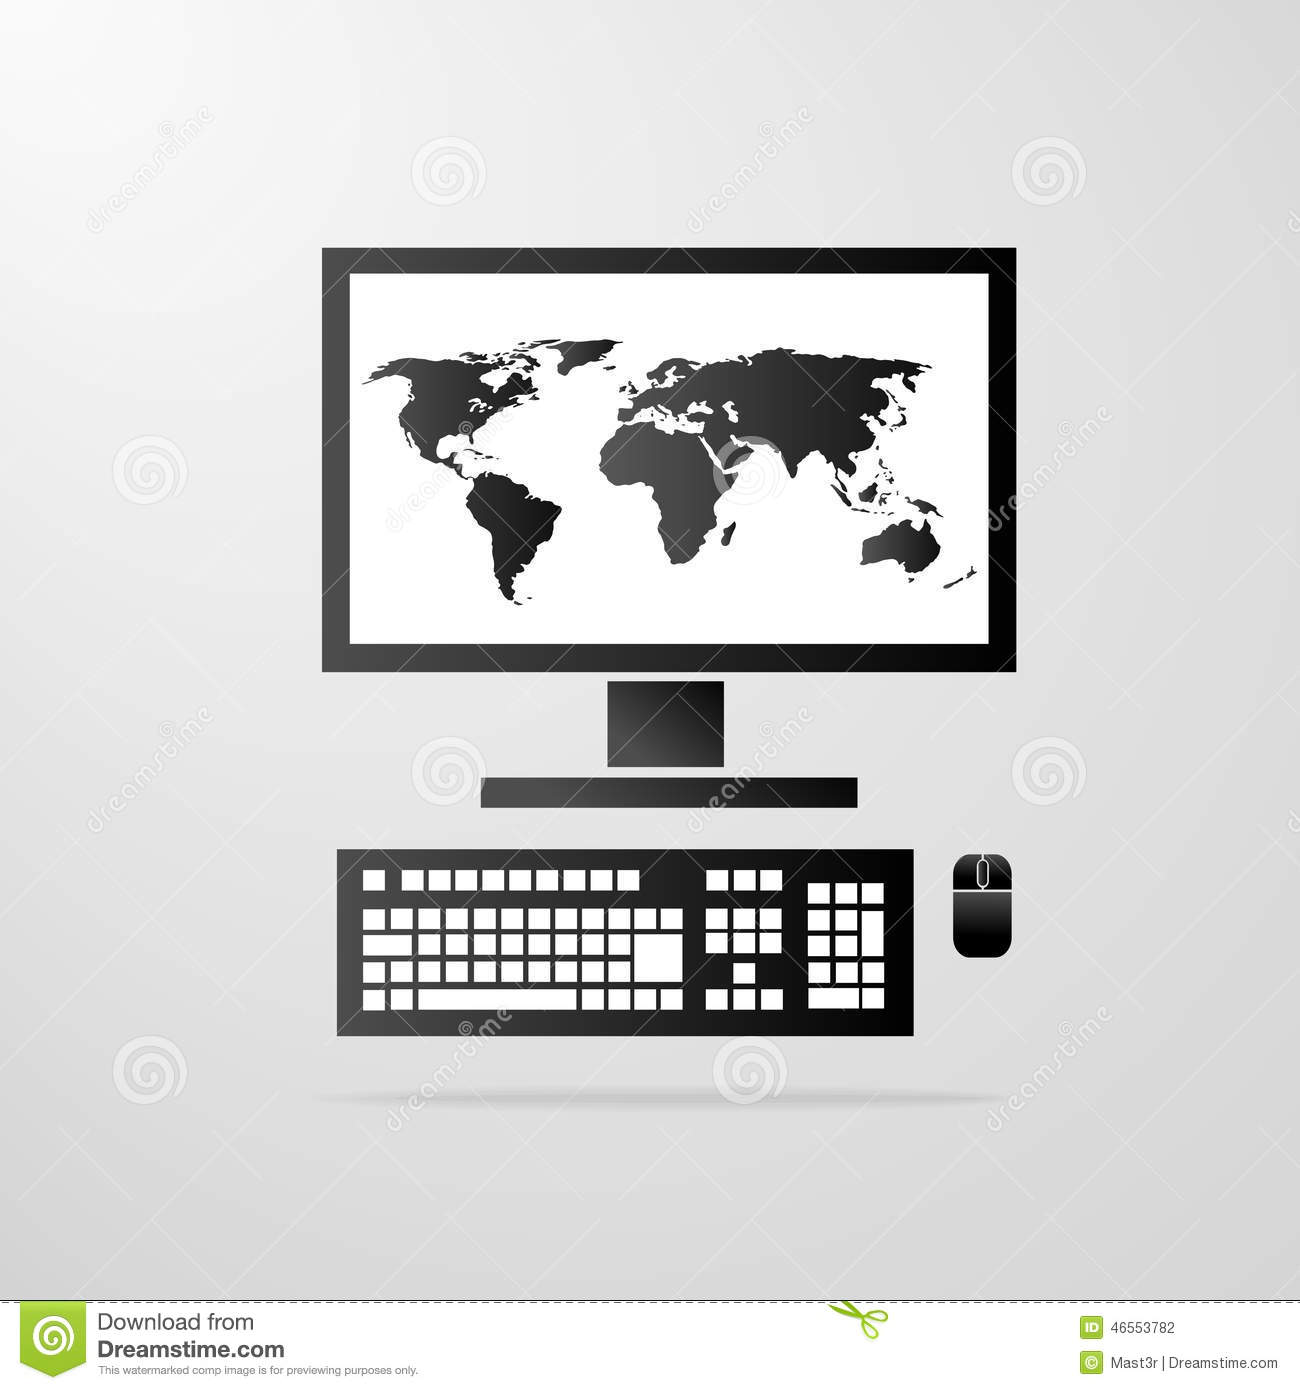 Computer desktop icon world map vector stock vector illustration computer desktop icon world map vector royalty free vector download gumiabroncs Gallery